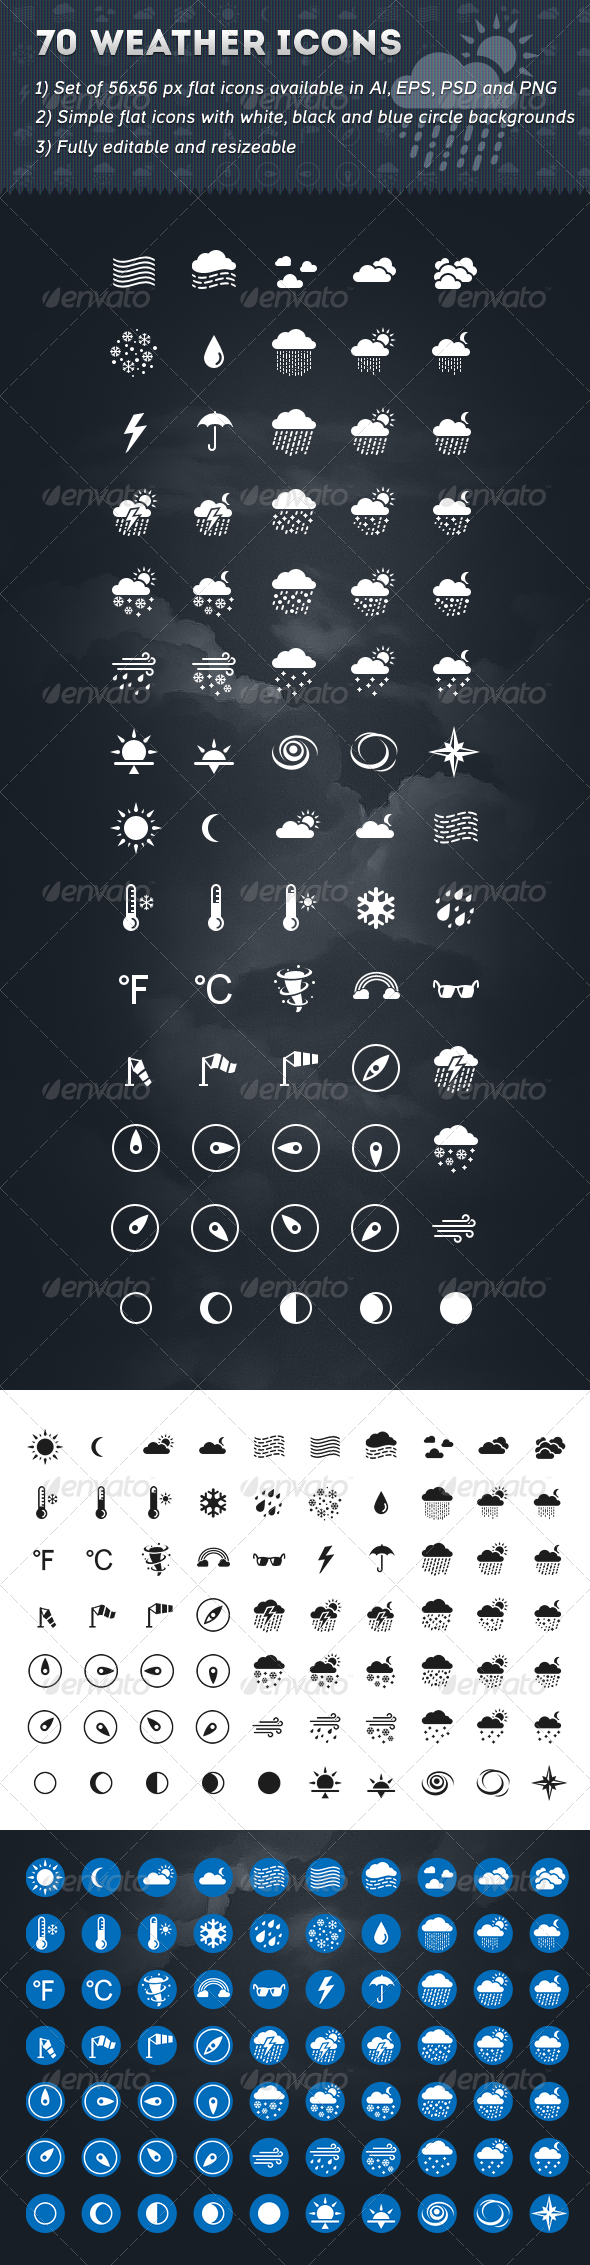 weather-icons5